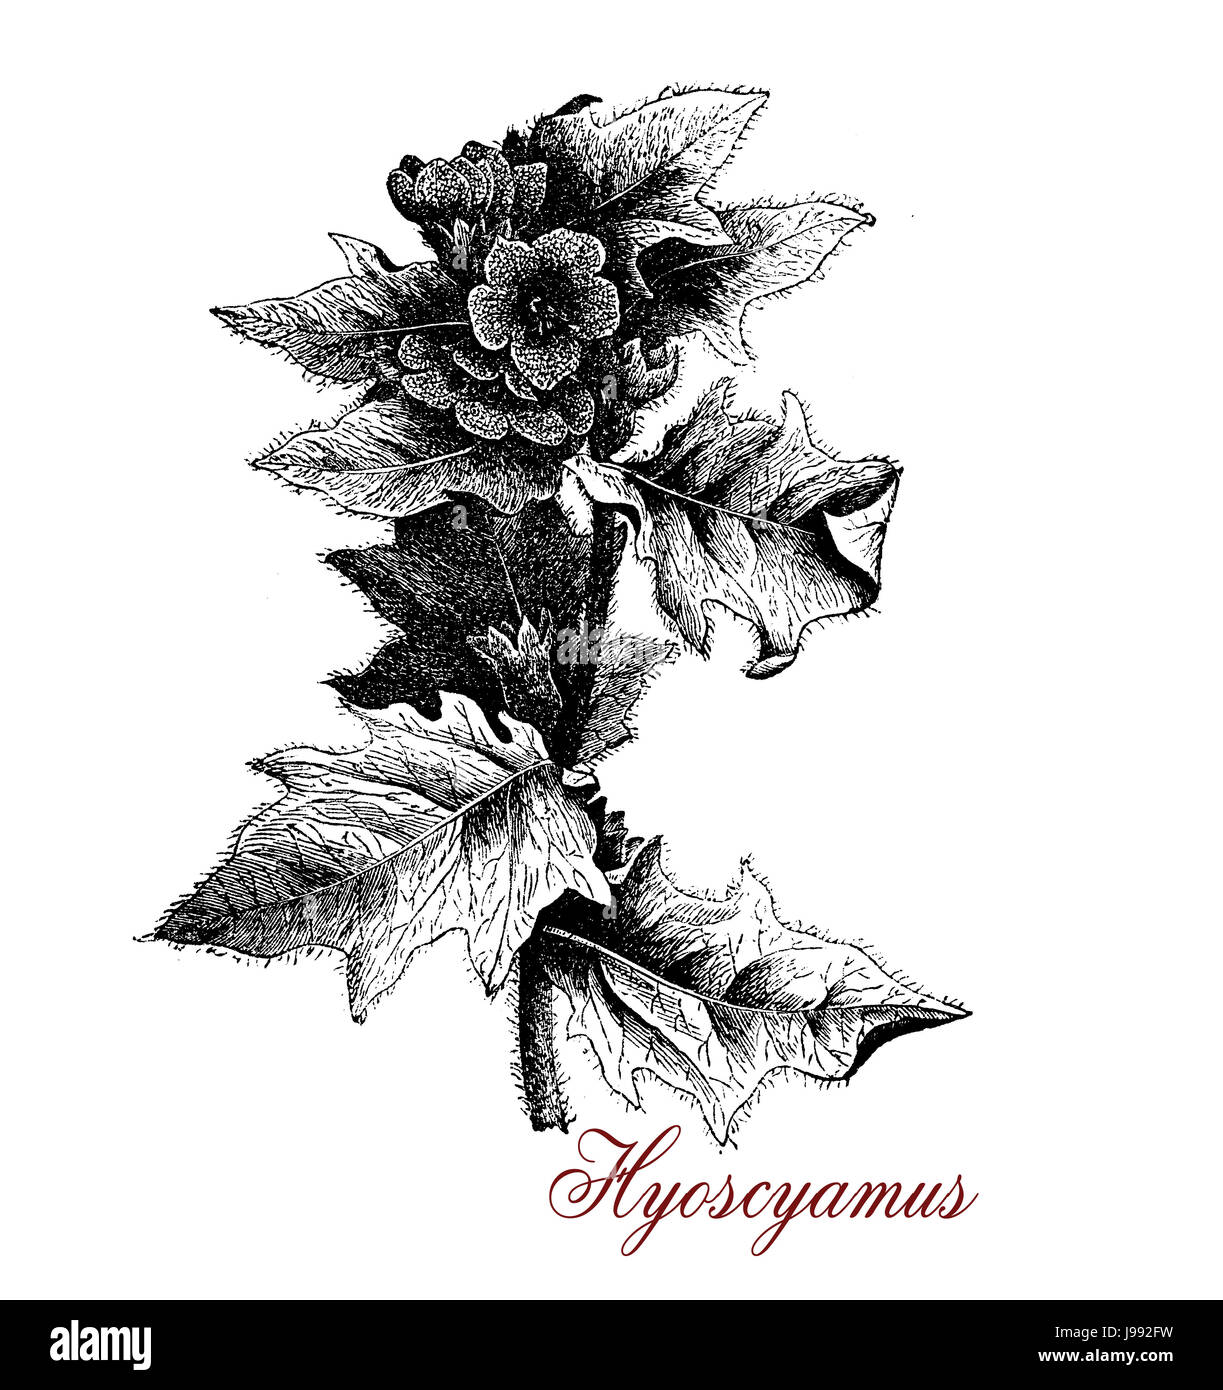 Vintage illustration of Hyoscyamus or henbane,toxic plant used in traditional medicine as anaesthetic  and for beer - Stock Image